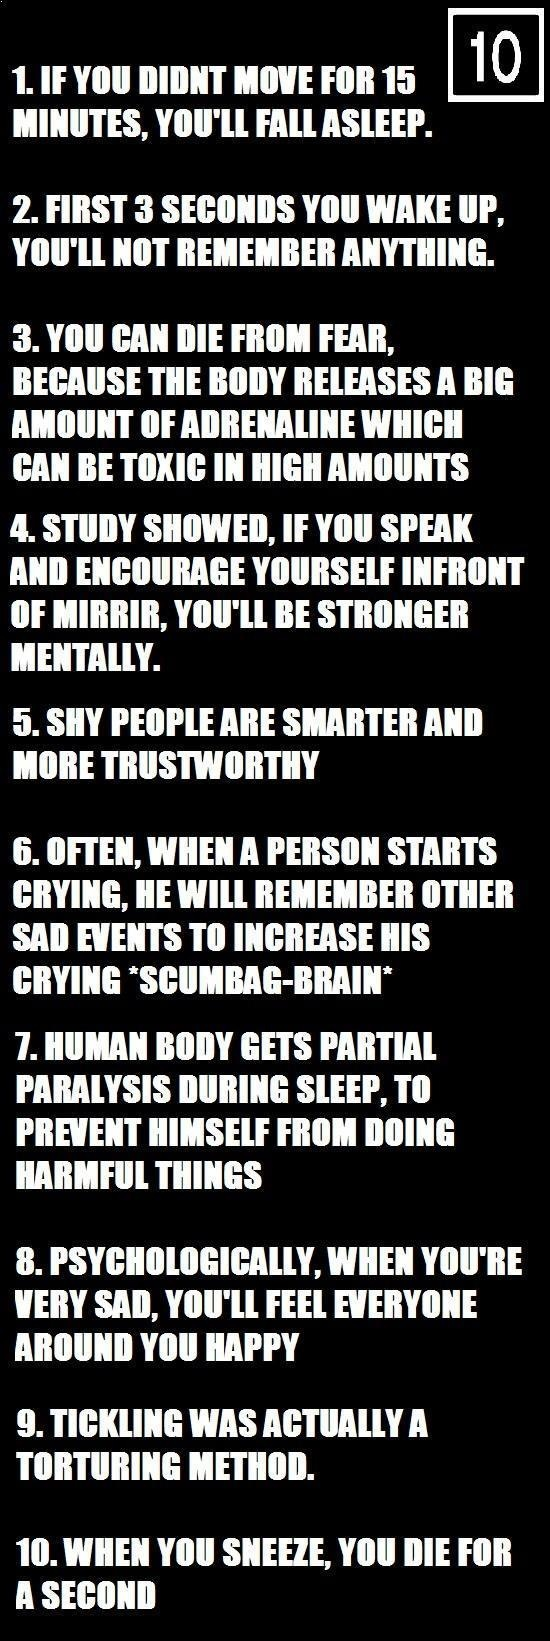 10 Psychological Facts.